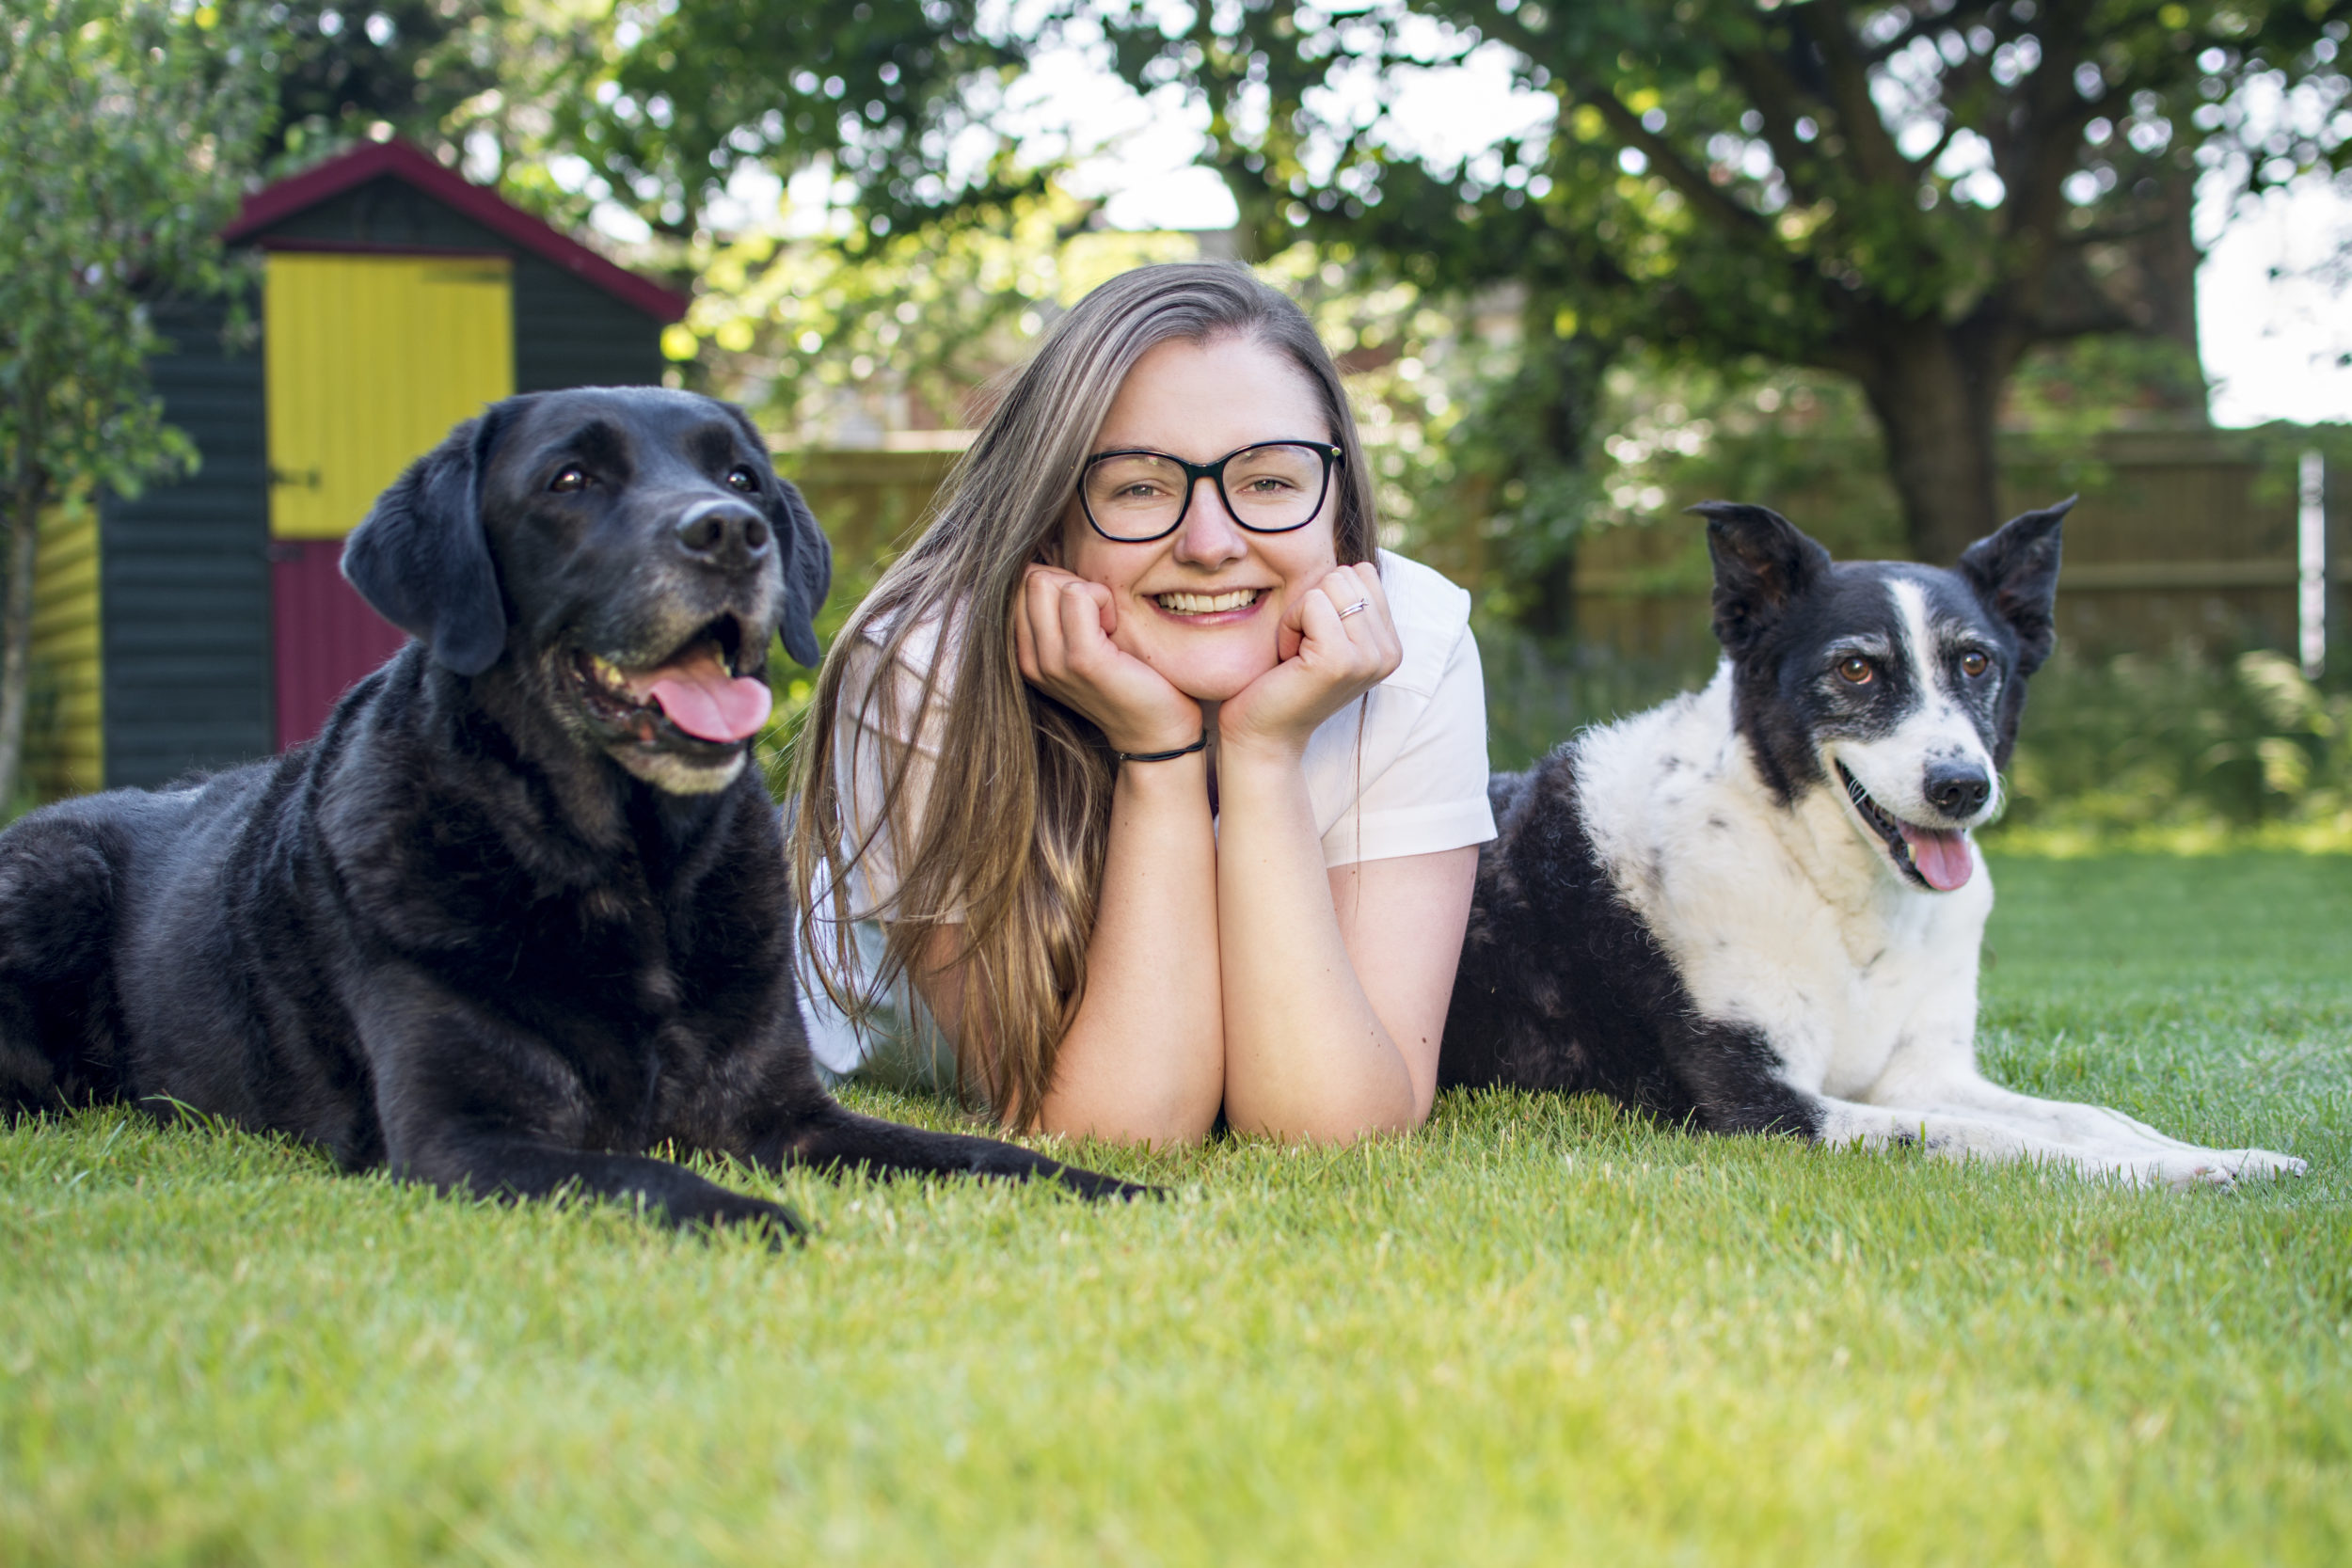 Barking Mad's 5 Free Ways to Have Fun with Your Dog